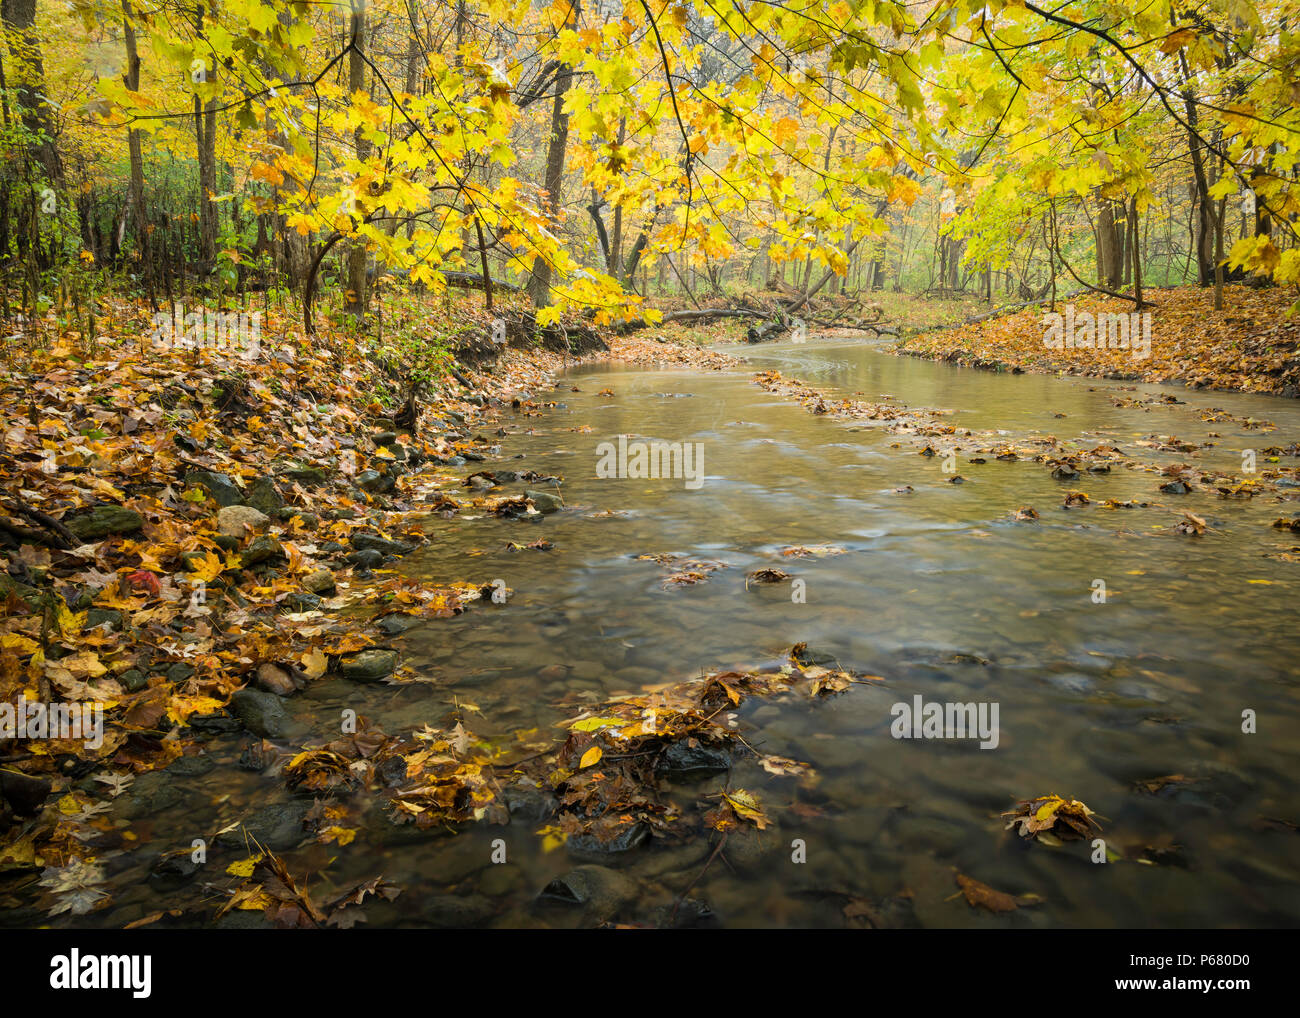 Sawmill Creek flows gently through the autumn landscape at Black